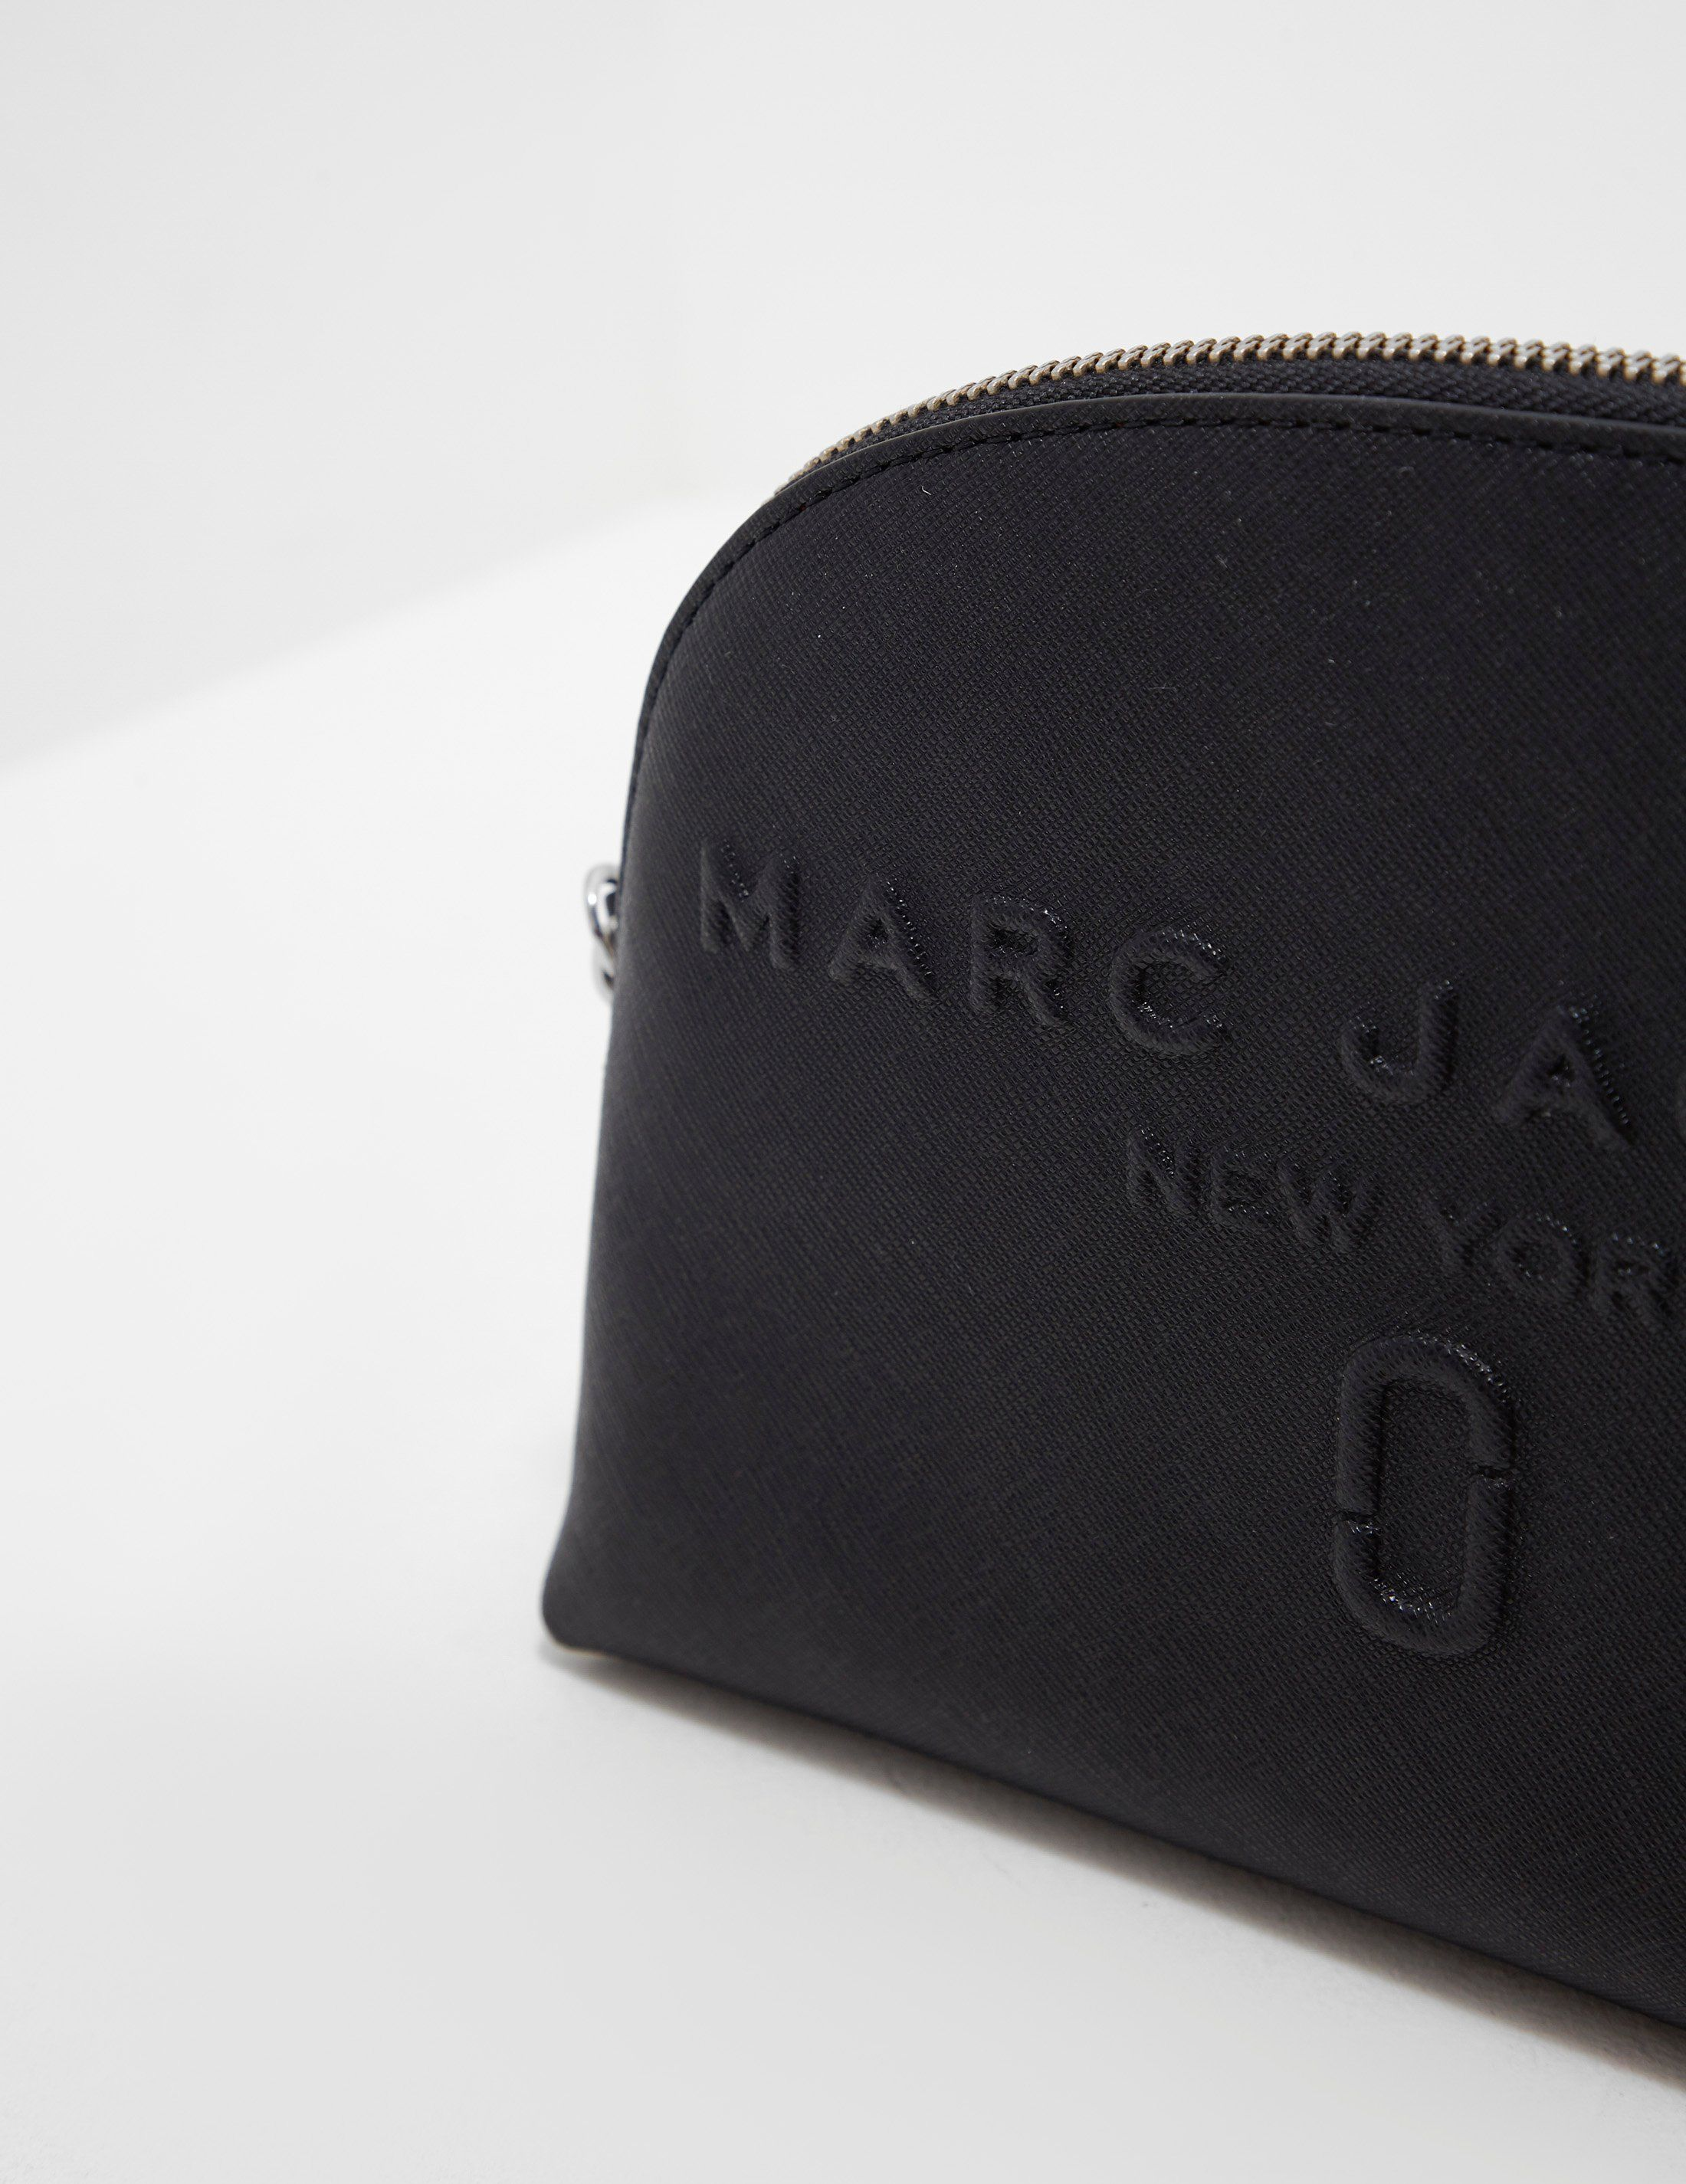 Marc Jacobs Cosmetics Bag - Online Exclusive